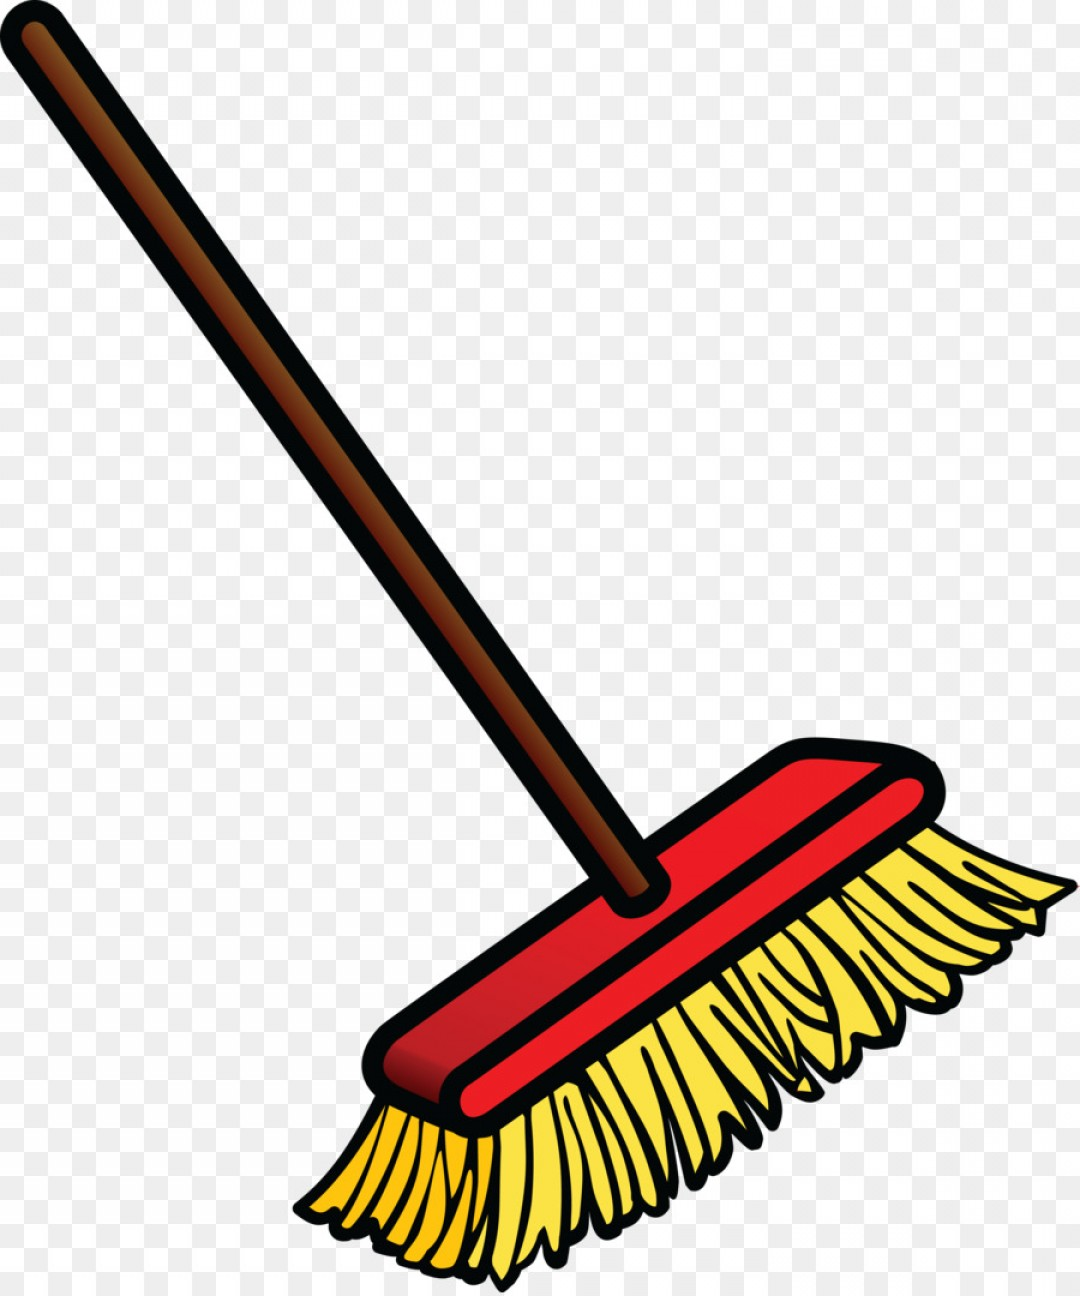 Mop And Bucket Clip Art Vector: Broom Download Clip Art Floor Vector